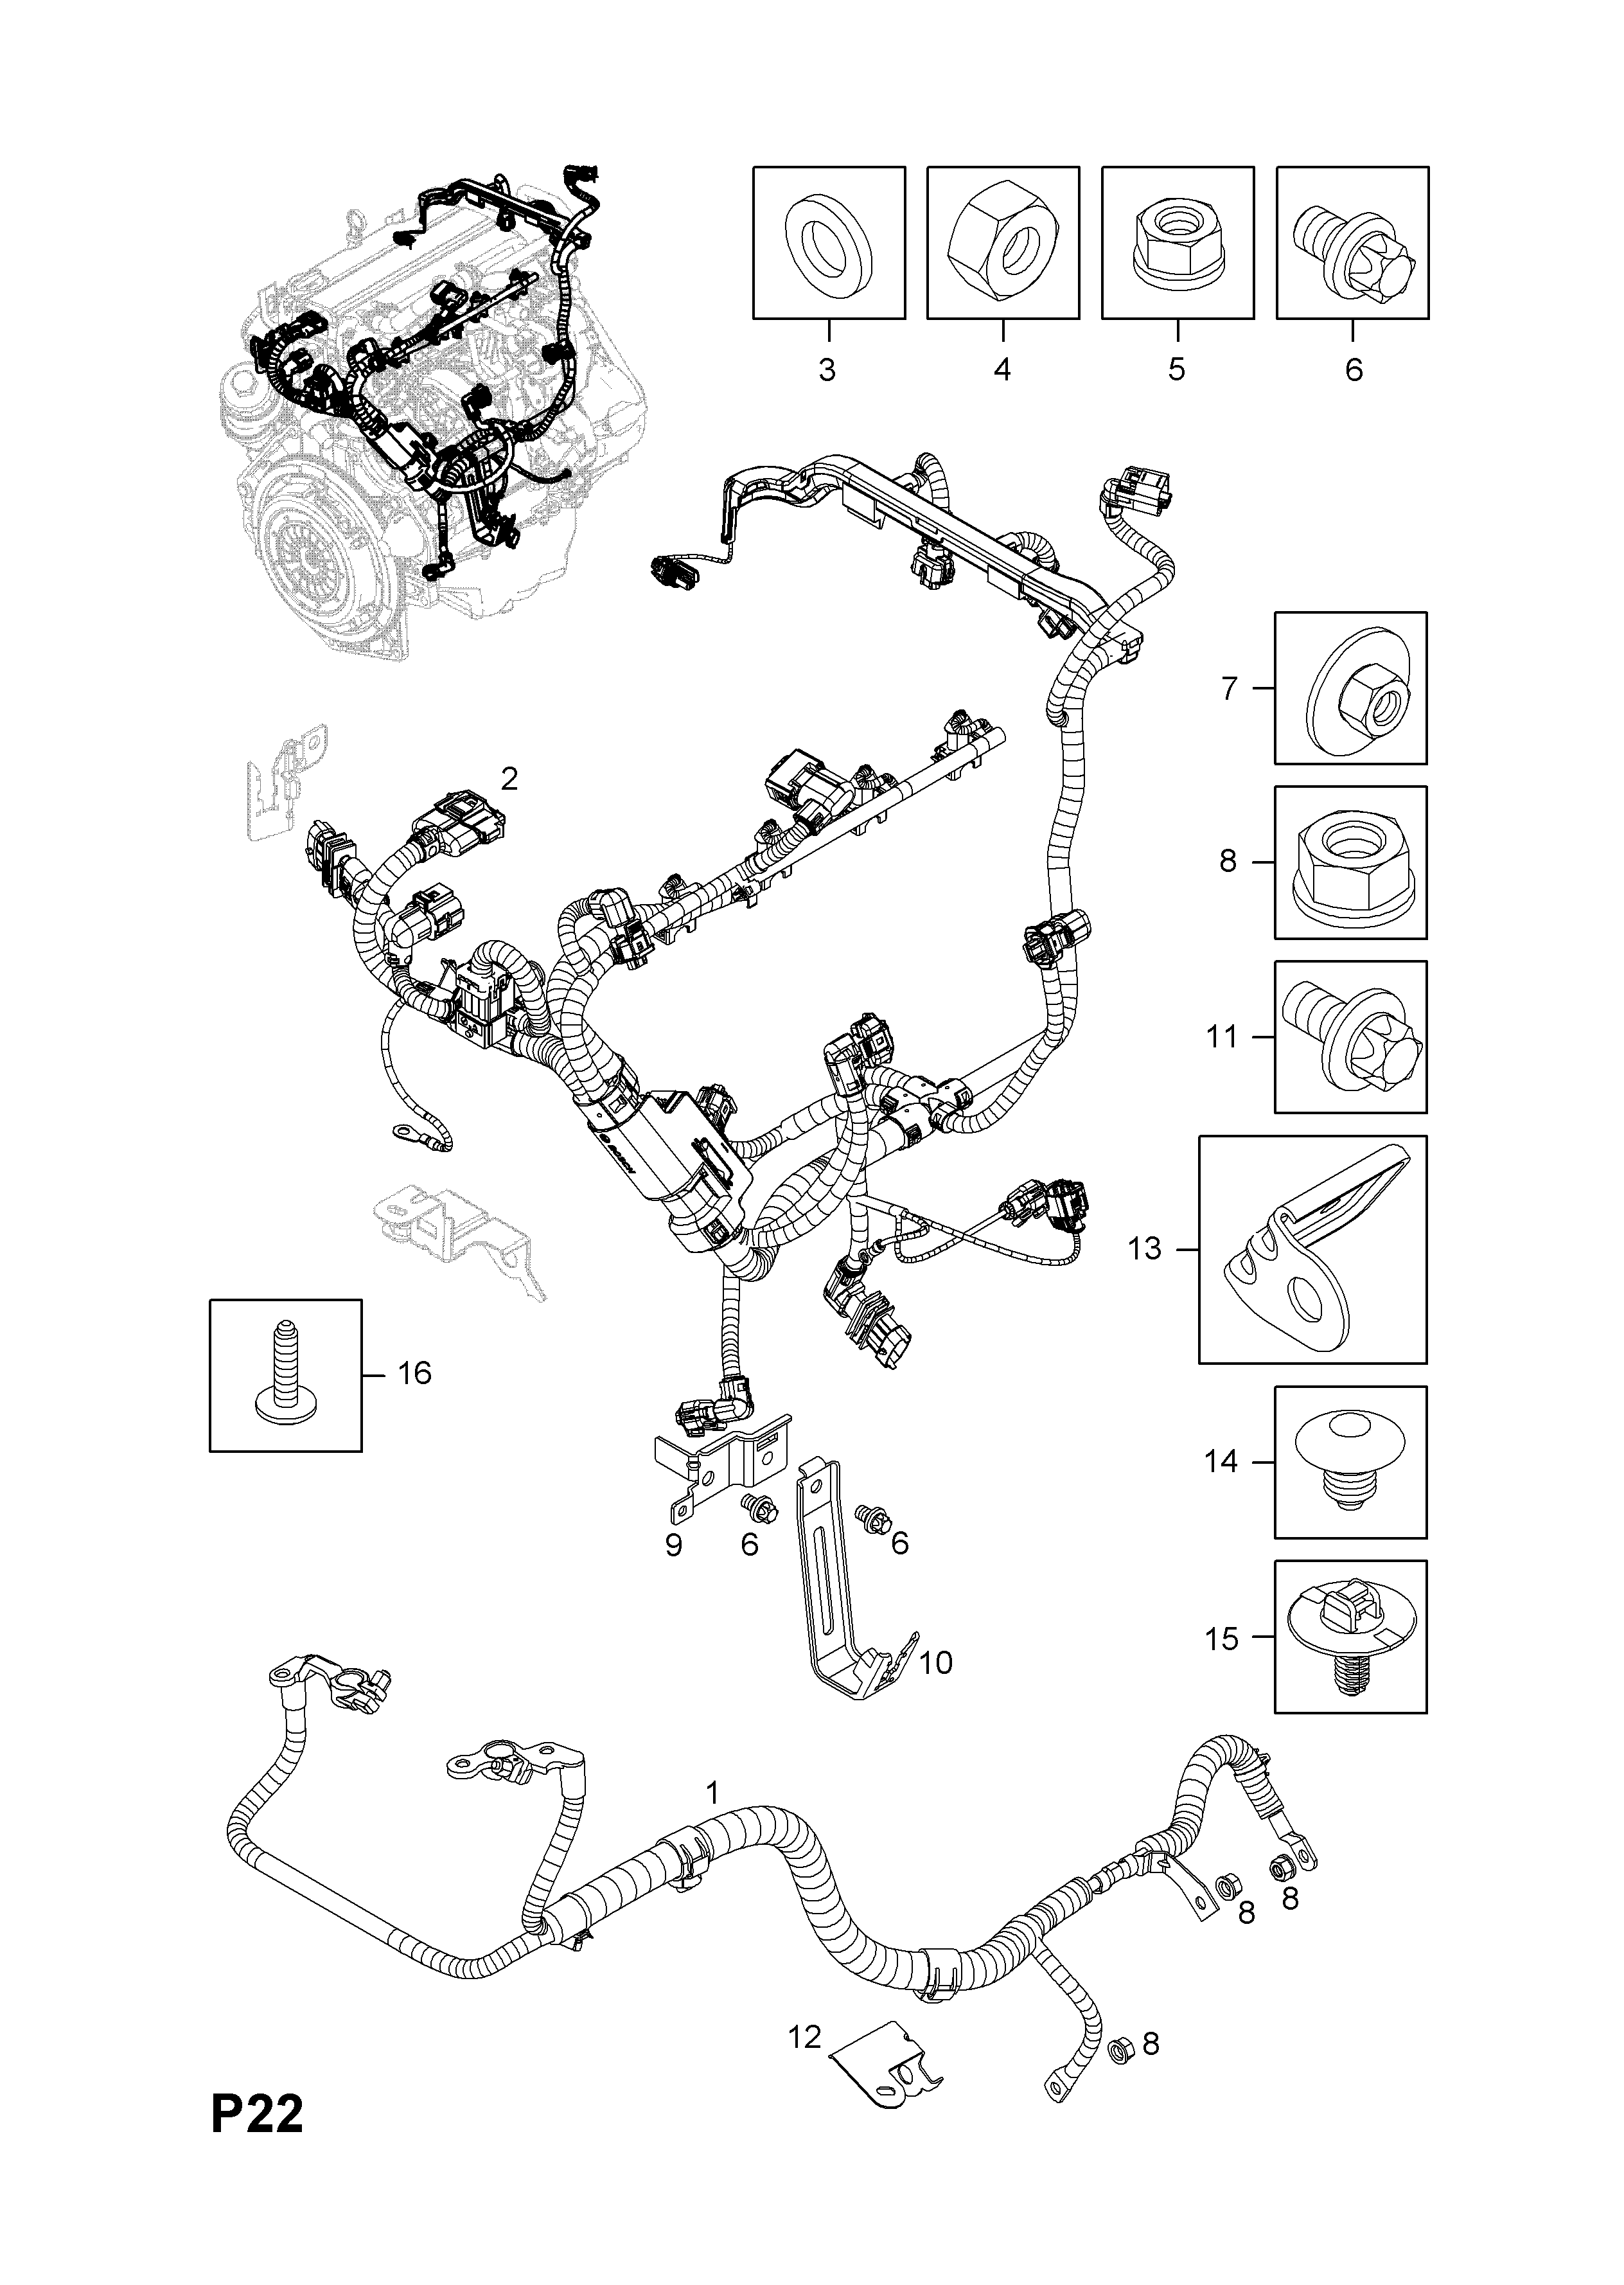 Engine Wiring Harness D Diagram For You All Opel Z12xep Lb4 Z14xep Lj2 Petrol Engines Rh Vauxhall 7zap Com Diy